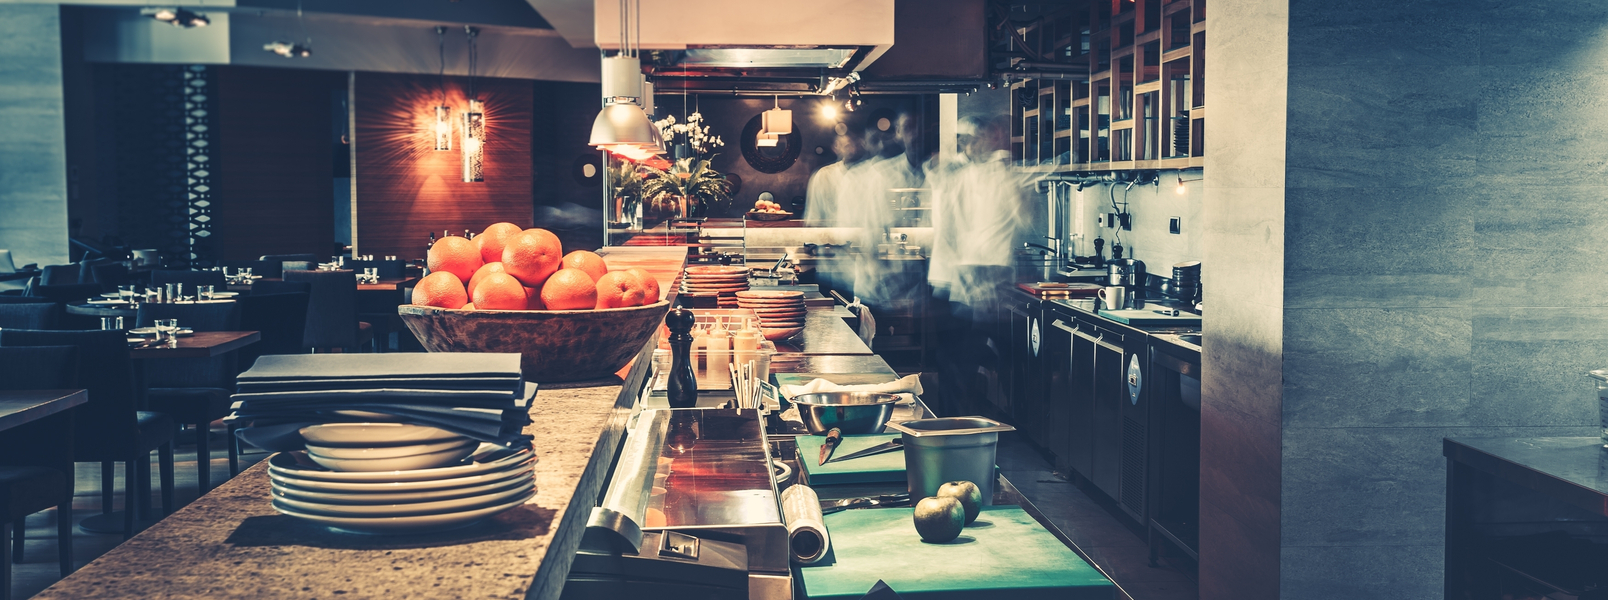 Opening a Restaurant in Toronto: 4 Things to Tackle When Getting Started